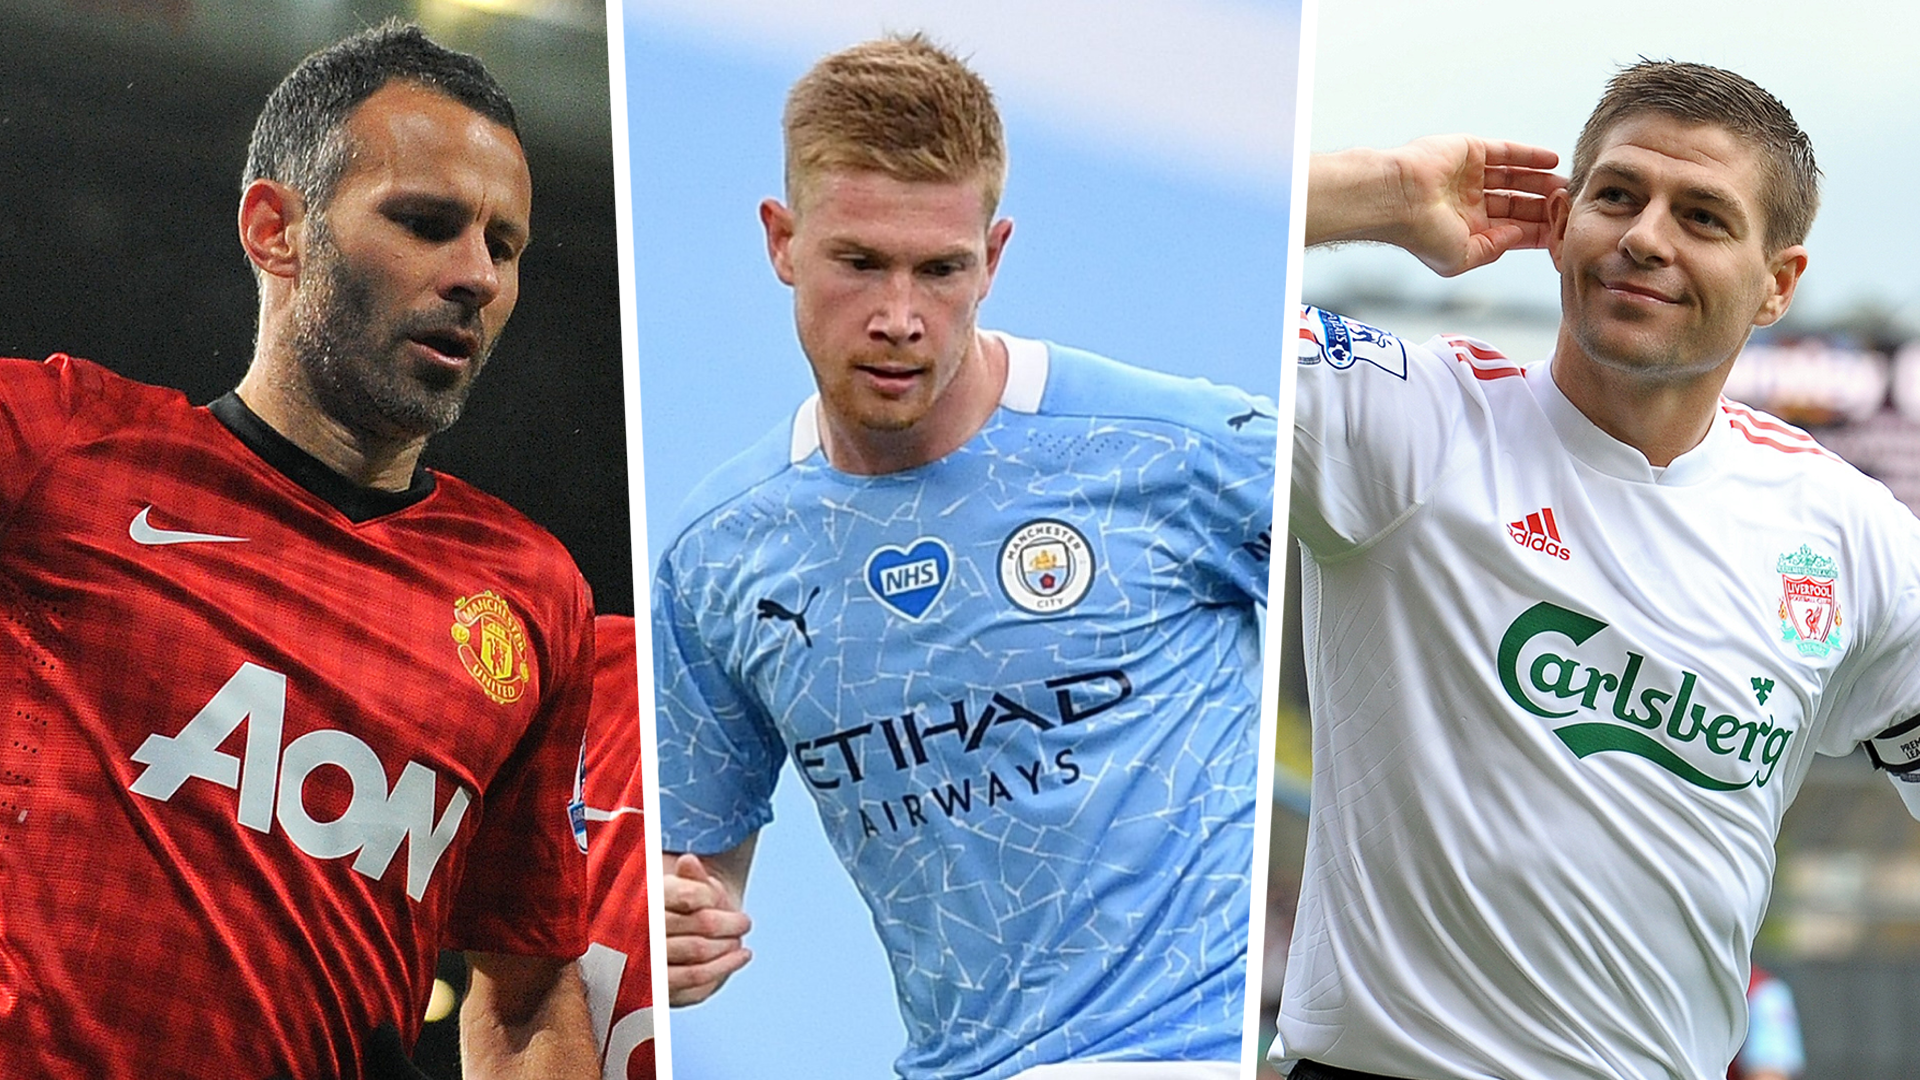 'De Bruyne reminds me of Gerrard and Giggs' - Man City star compared to Man Utd and Liverpool legends by Rooney